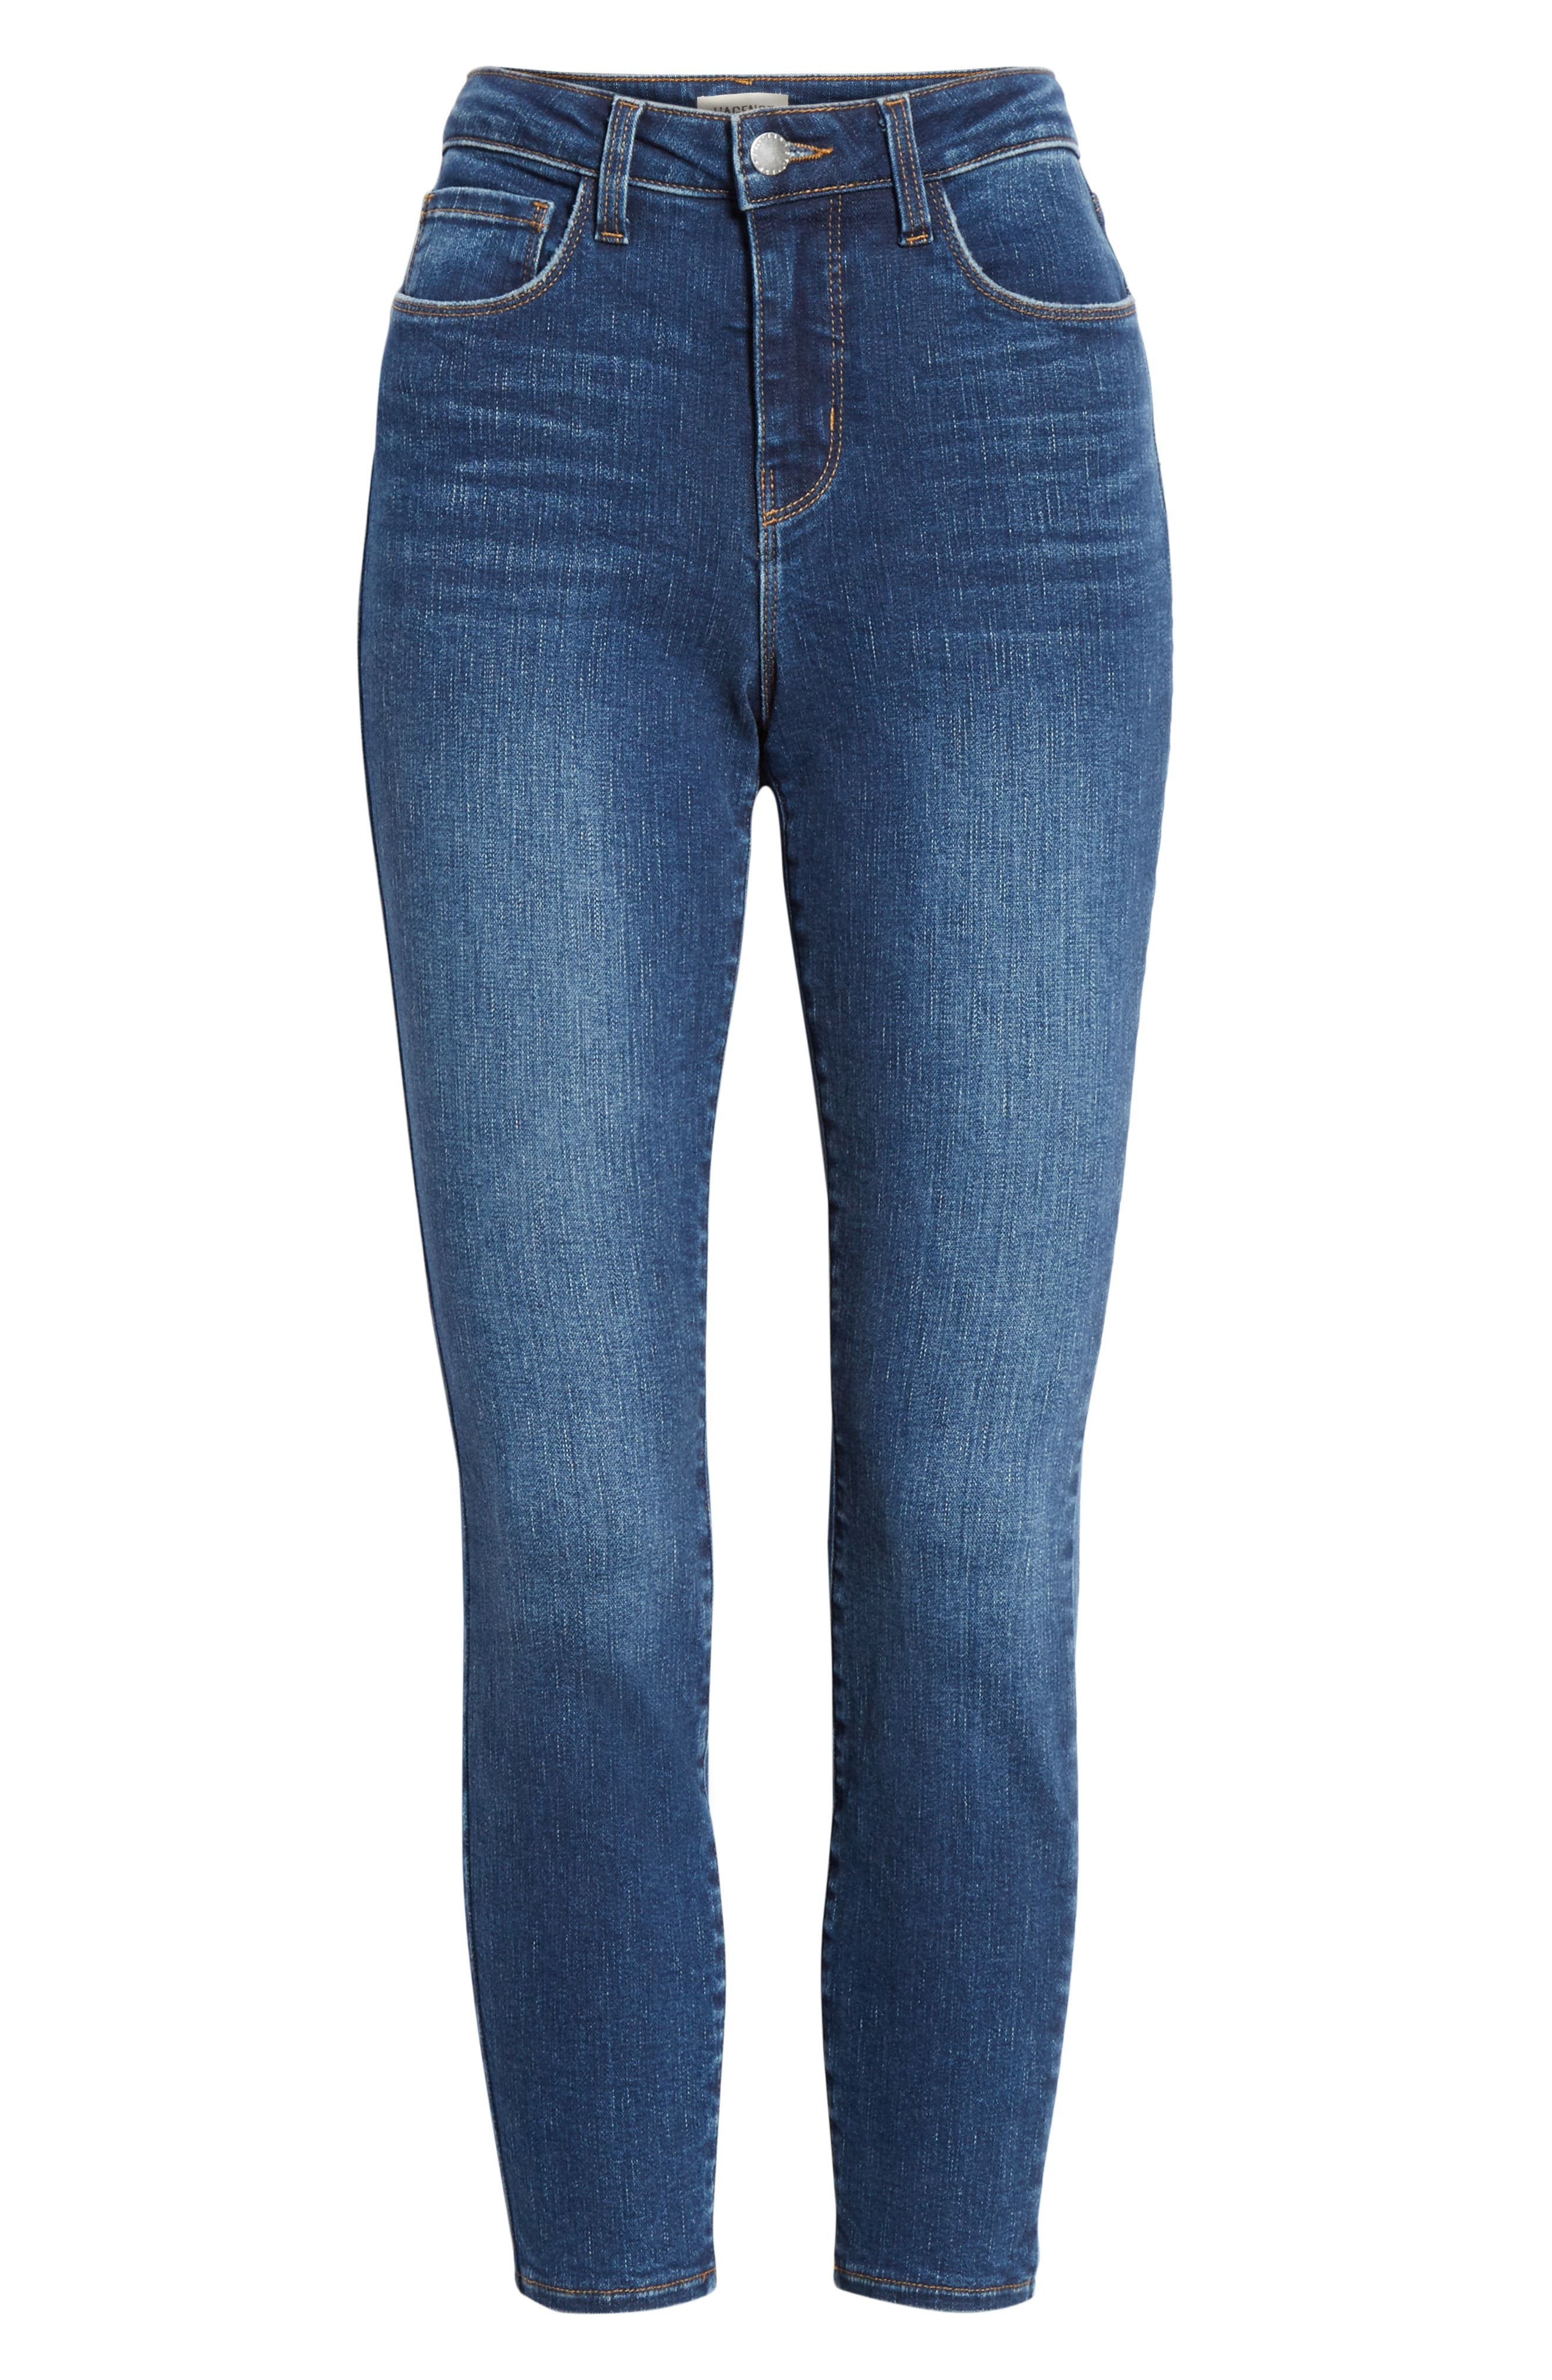 Margot Crop Skinny Jeans,                             Alternate thumbnail 6, color,                             TUSCAN